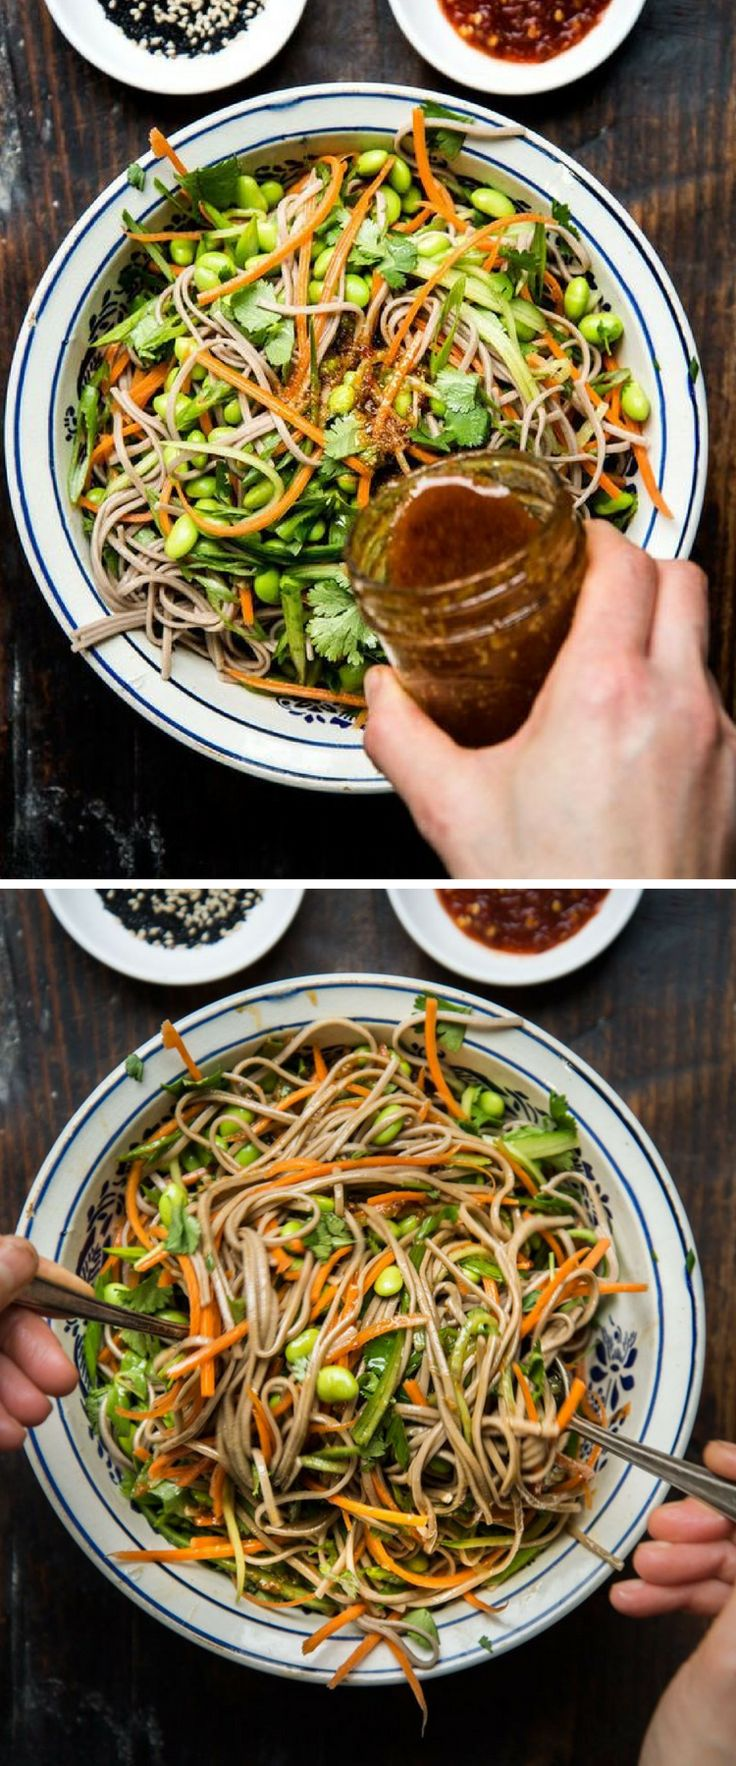 Skip the takeout! Make your own cold noodle salad with veggies, cilantro, sesame seeds and a spicy homemade dressing. Perfect for packed lunches!